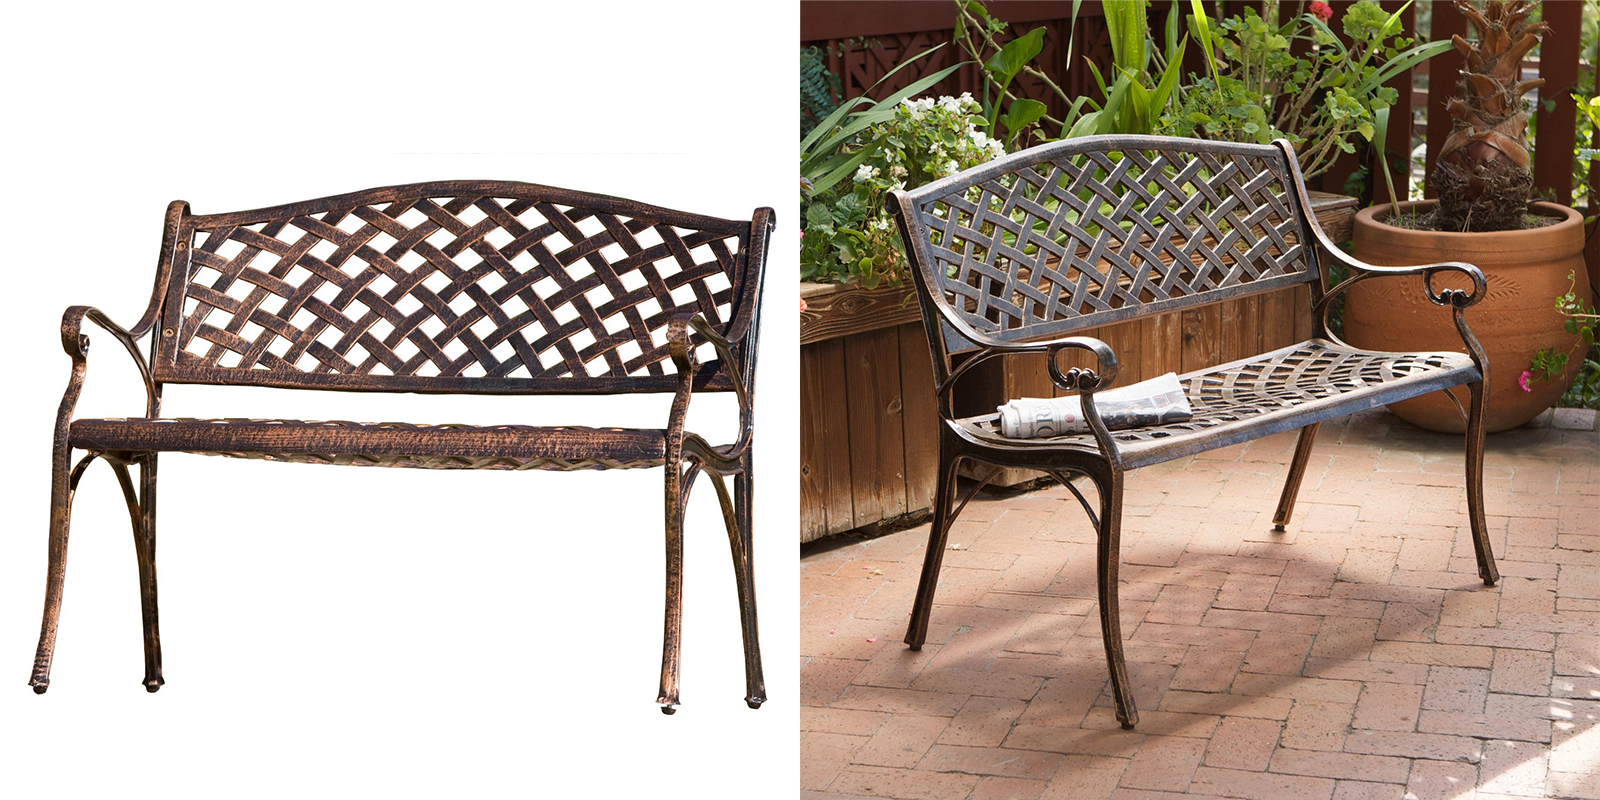 Patio Chair - Copper Finish Cast Aluminum Bench